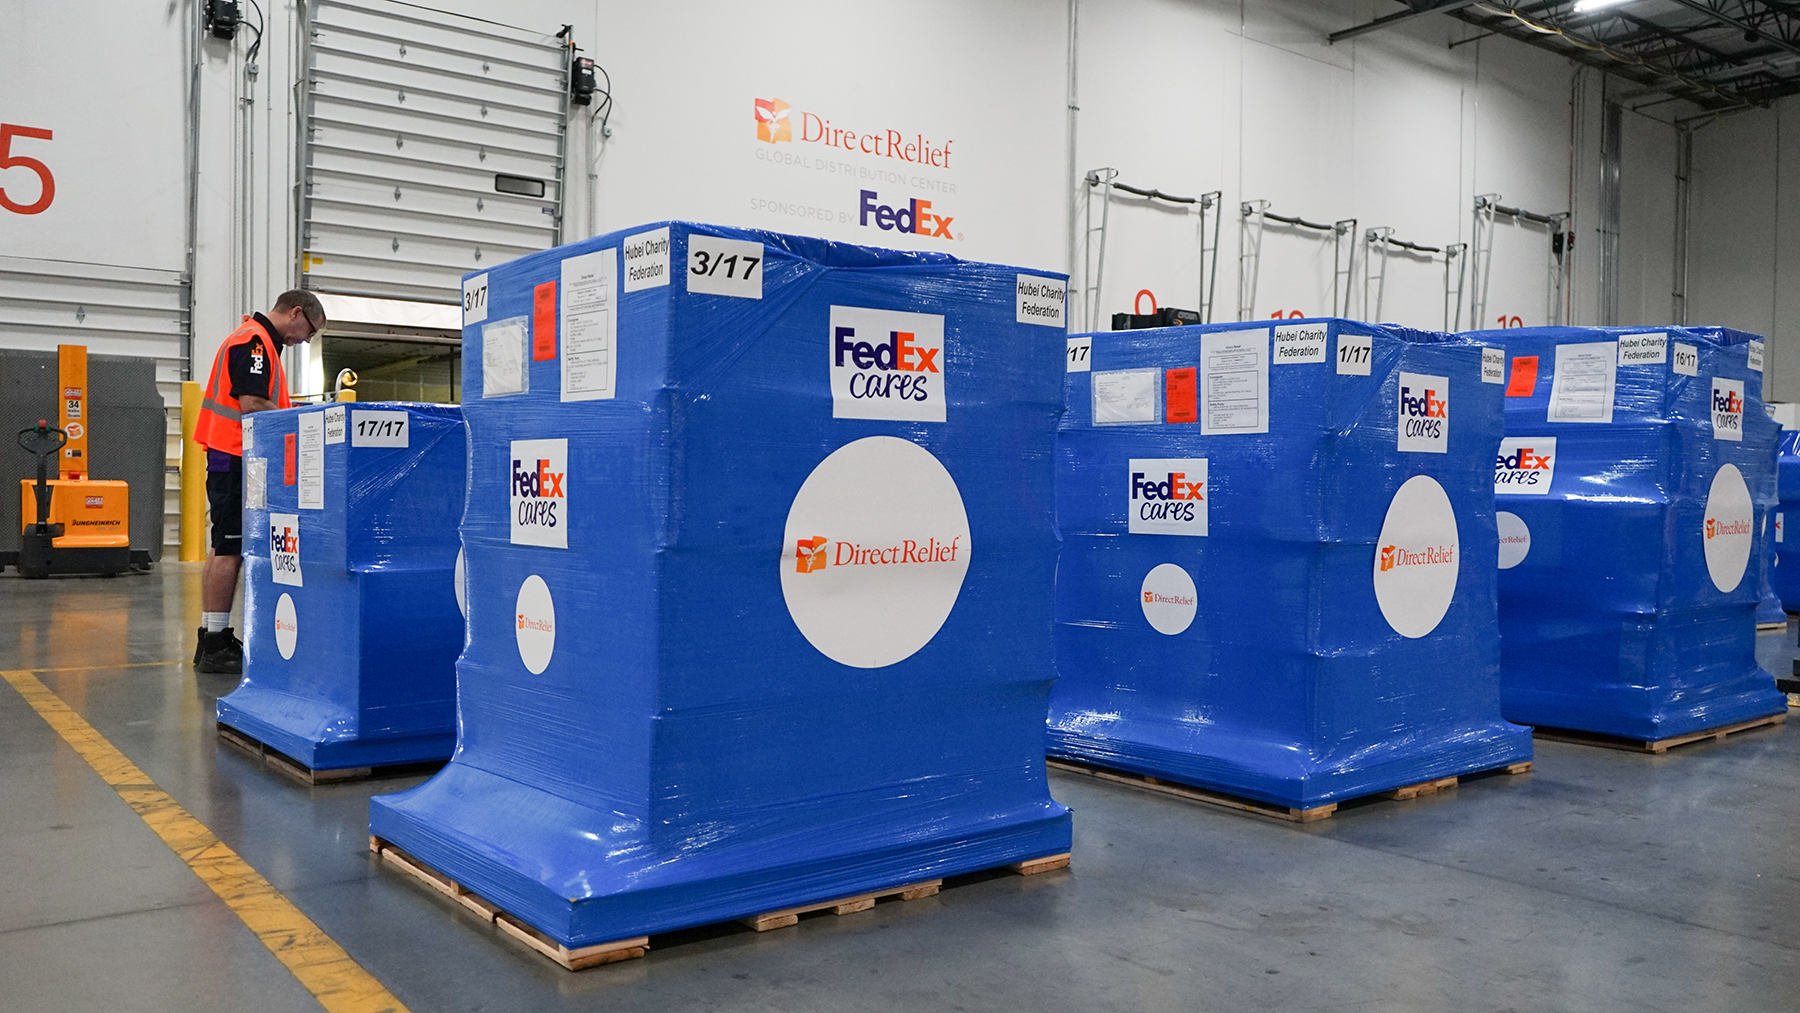 A shipment of medical aid, including personal protective gear, leaves Direct Relief's warehouse on Jan. 27, 2020, bound for China, where it will be used by health care providers to protect against the spread of coronavirus. Transportation for the shipment was provided free of charge by FedEx. (Lara Cooper/Direct Relief)